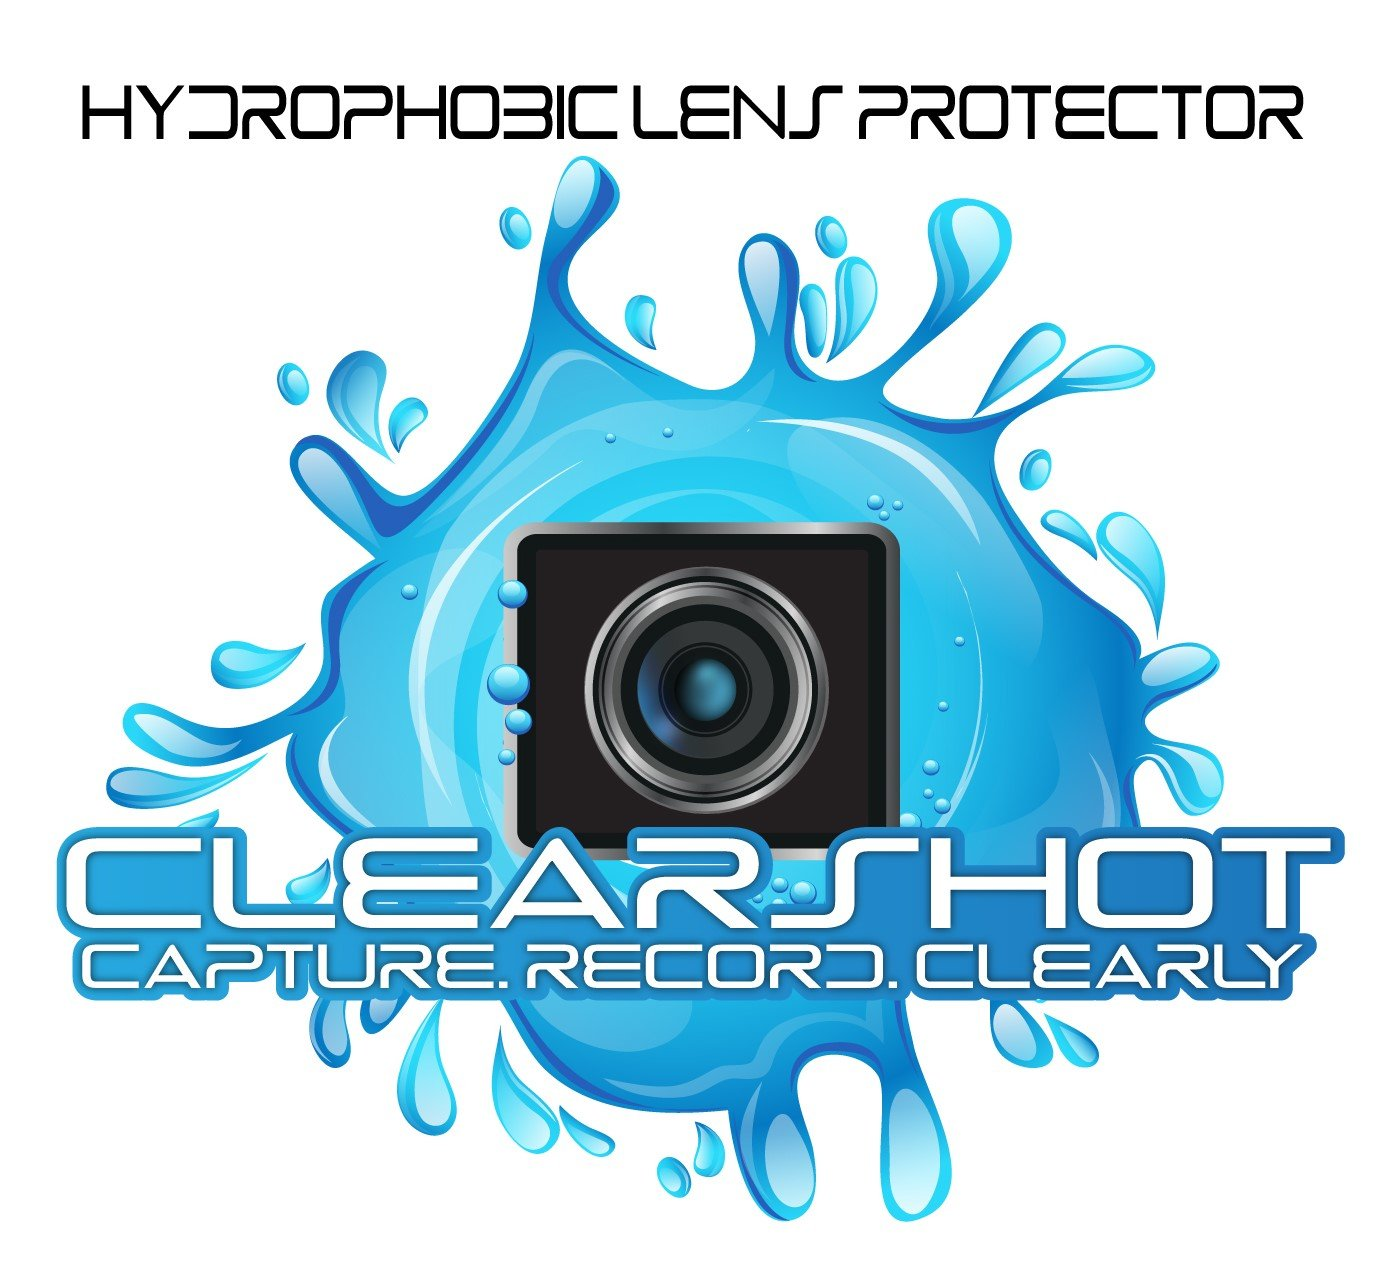 Hydrophobic Lens and Screen Protector for GoPro Hero 5/6 Black with FREE SILICONE LENS COVER (5.99 value). Anti-Scratch, Water/Snow Repellent, Touchscreen Compatible, Lasts up to 6 Months. by ClearShot